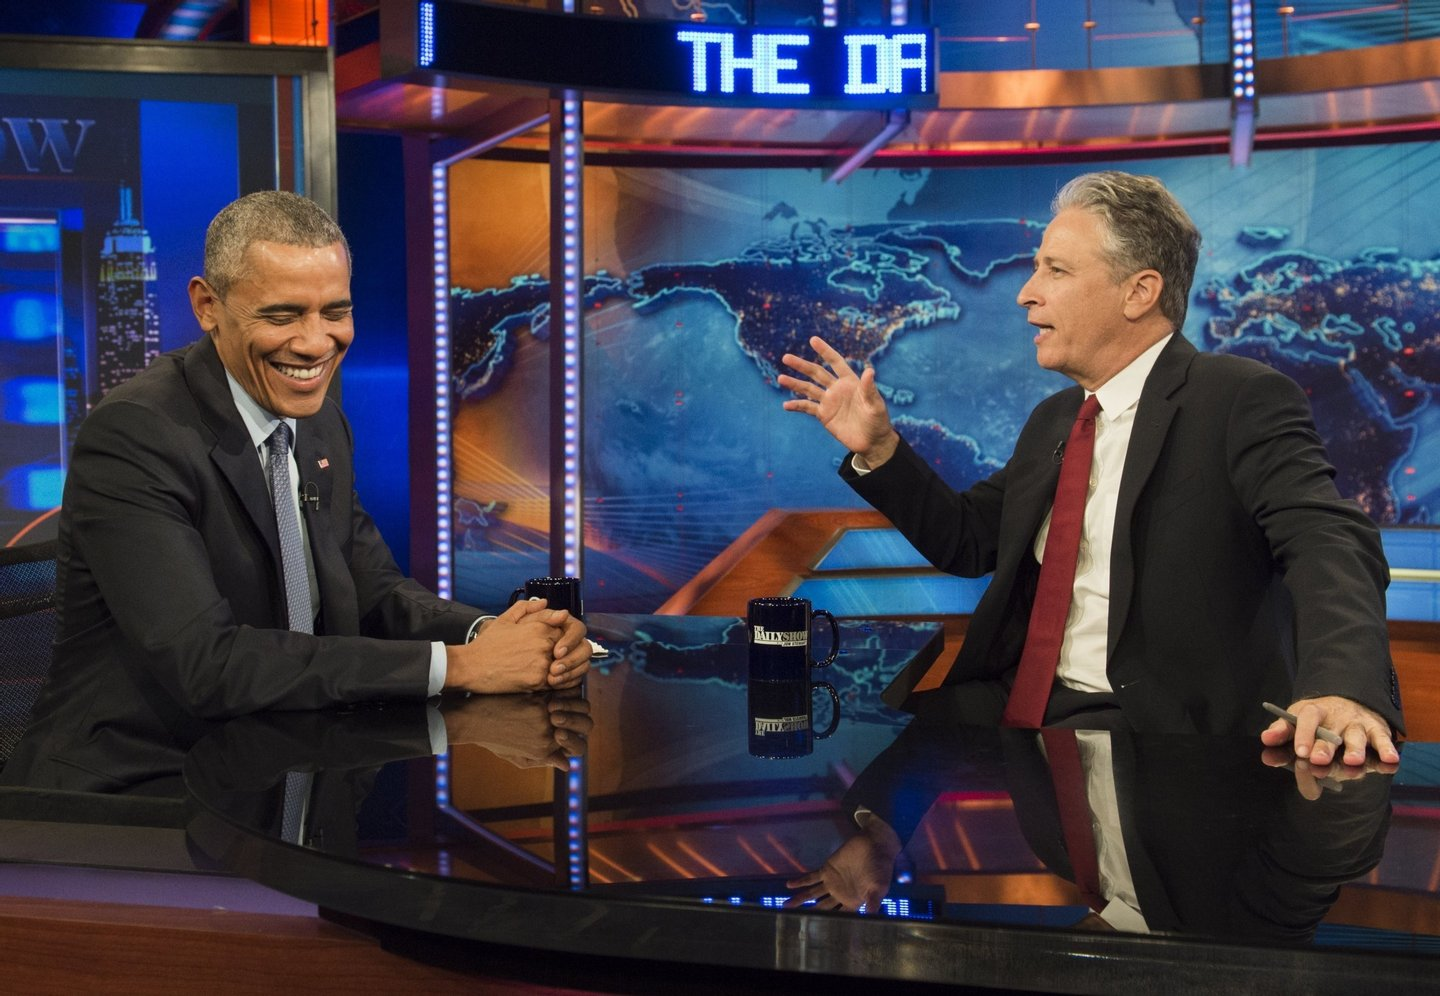 "US President Barack Obama speaks with Jon Stewart, host of ""The Daily Show with Jon Stewart,"" during a taping of the show in New York, July 21, 2015. The appearance marks Obama's third time on the show as President, and seventh overall. AFP PHOTO / SAUL LOEB        (Photo credit should read SAUL LOEB/AFP/Getty Images)"